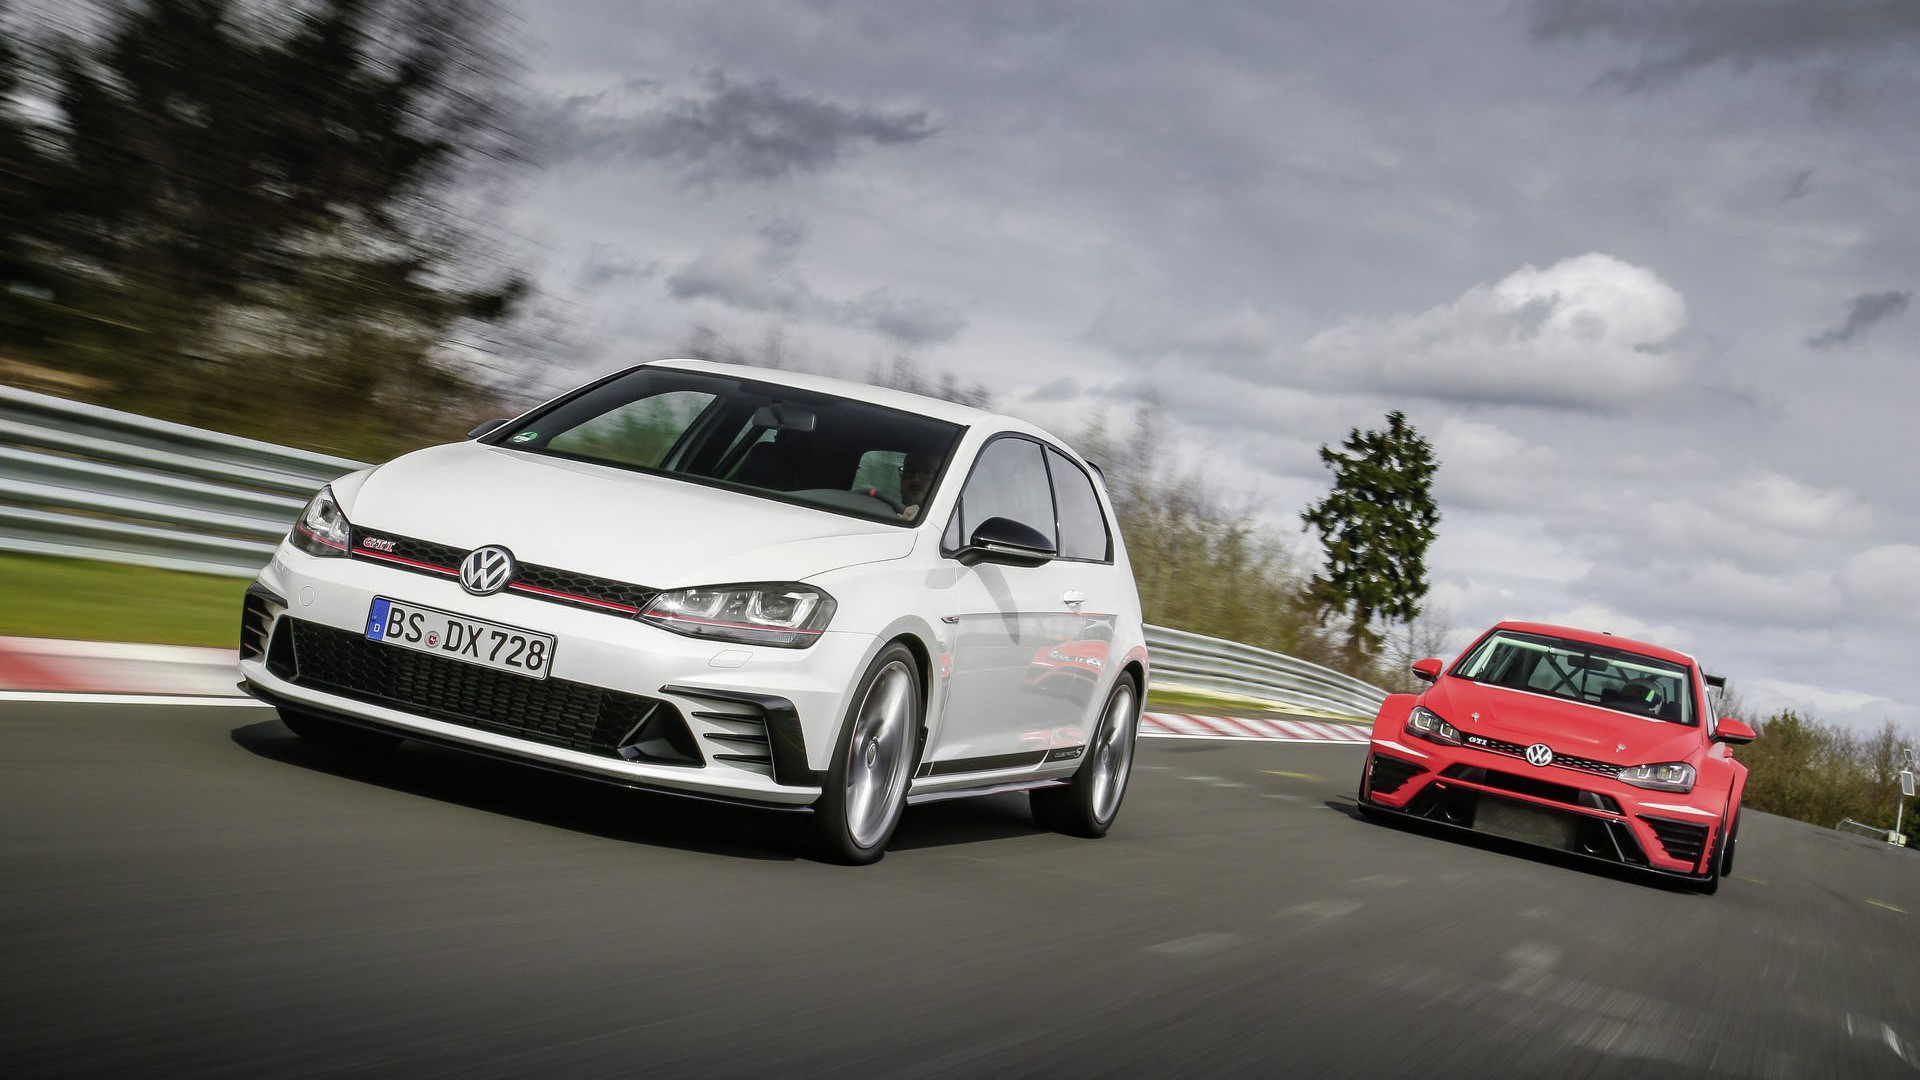 VW Golf GTI Clubsport S Revealed, Sets New Nurburgring FWD Record